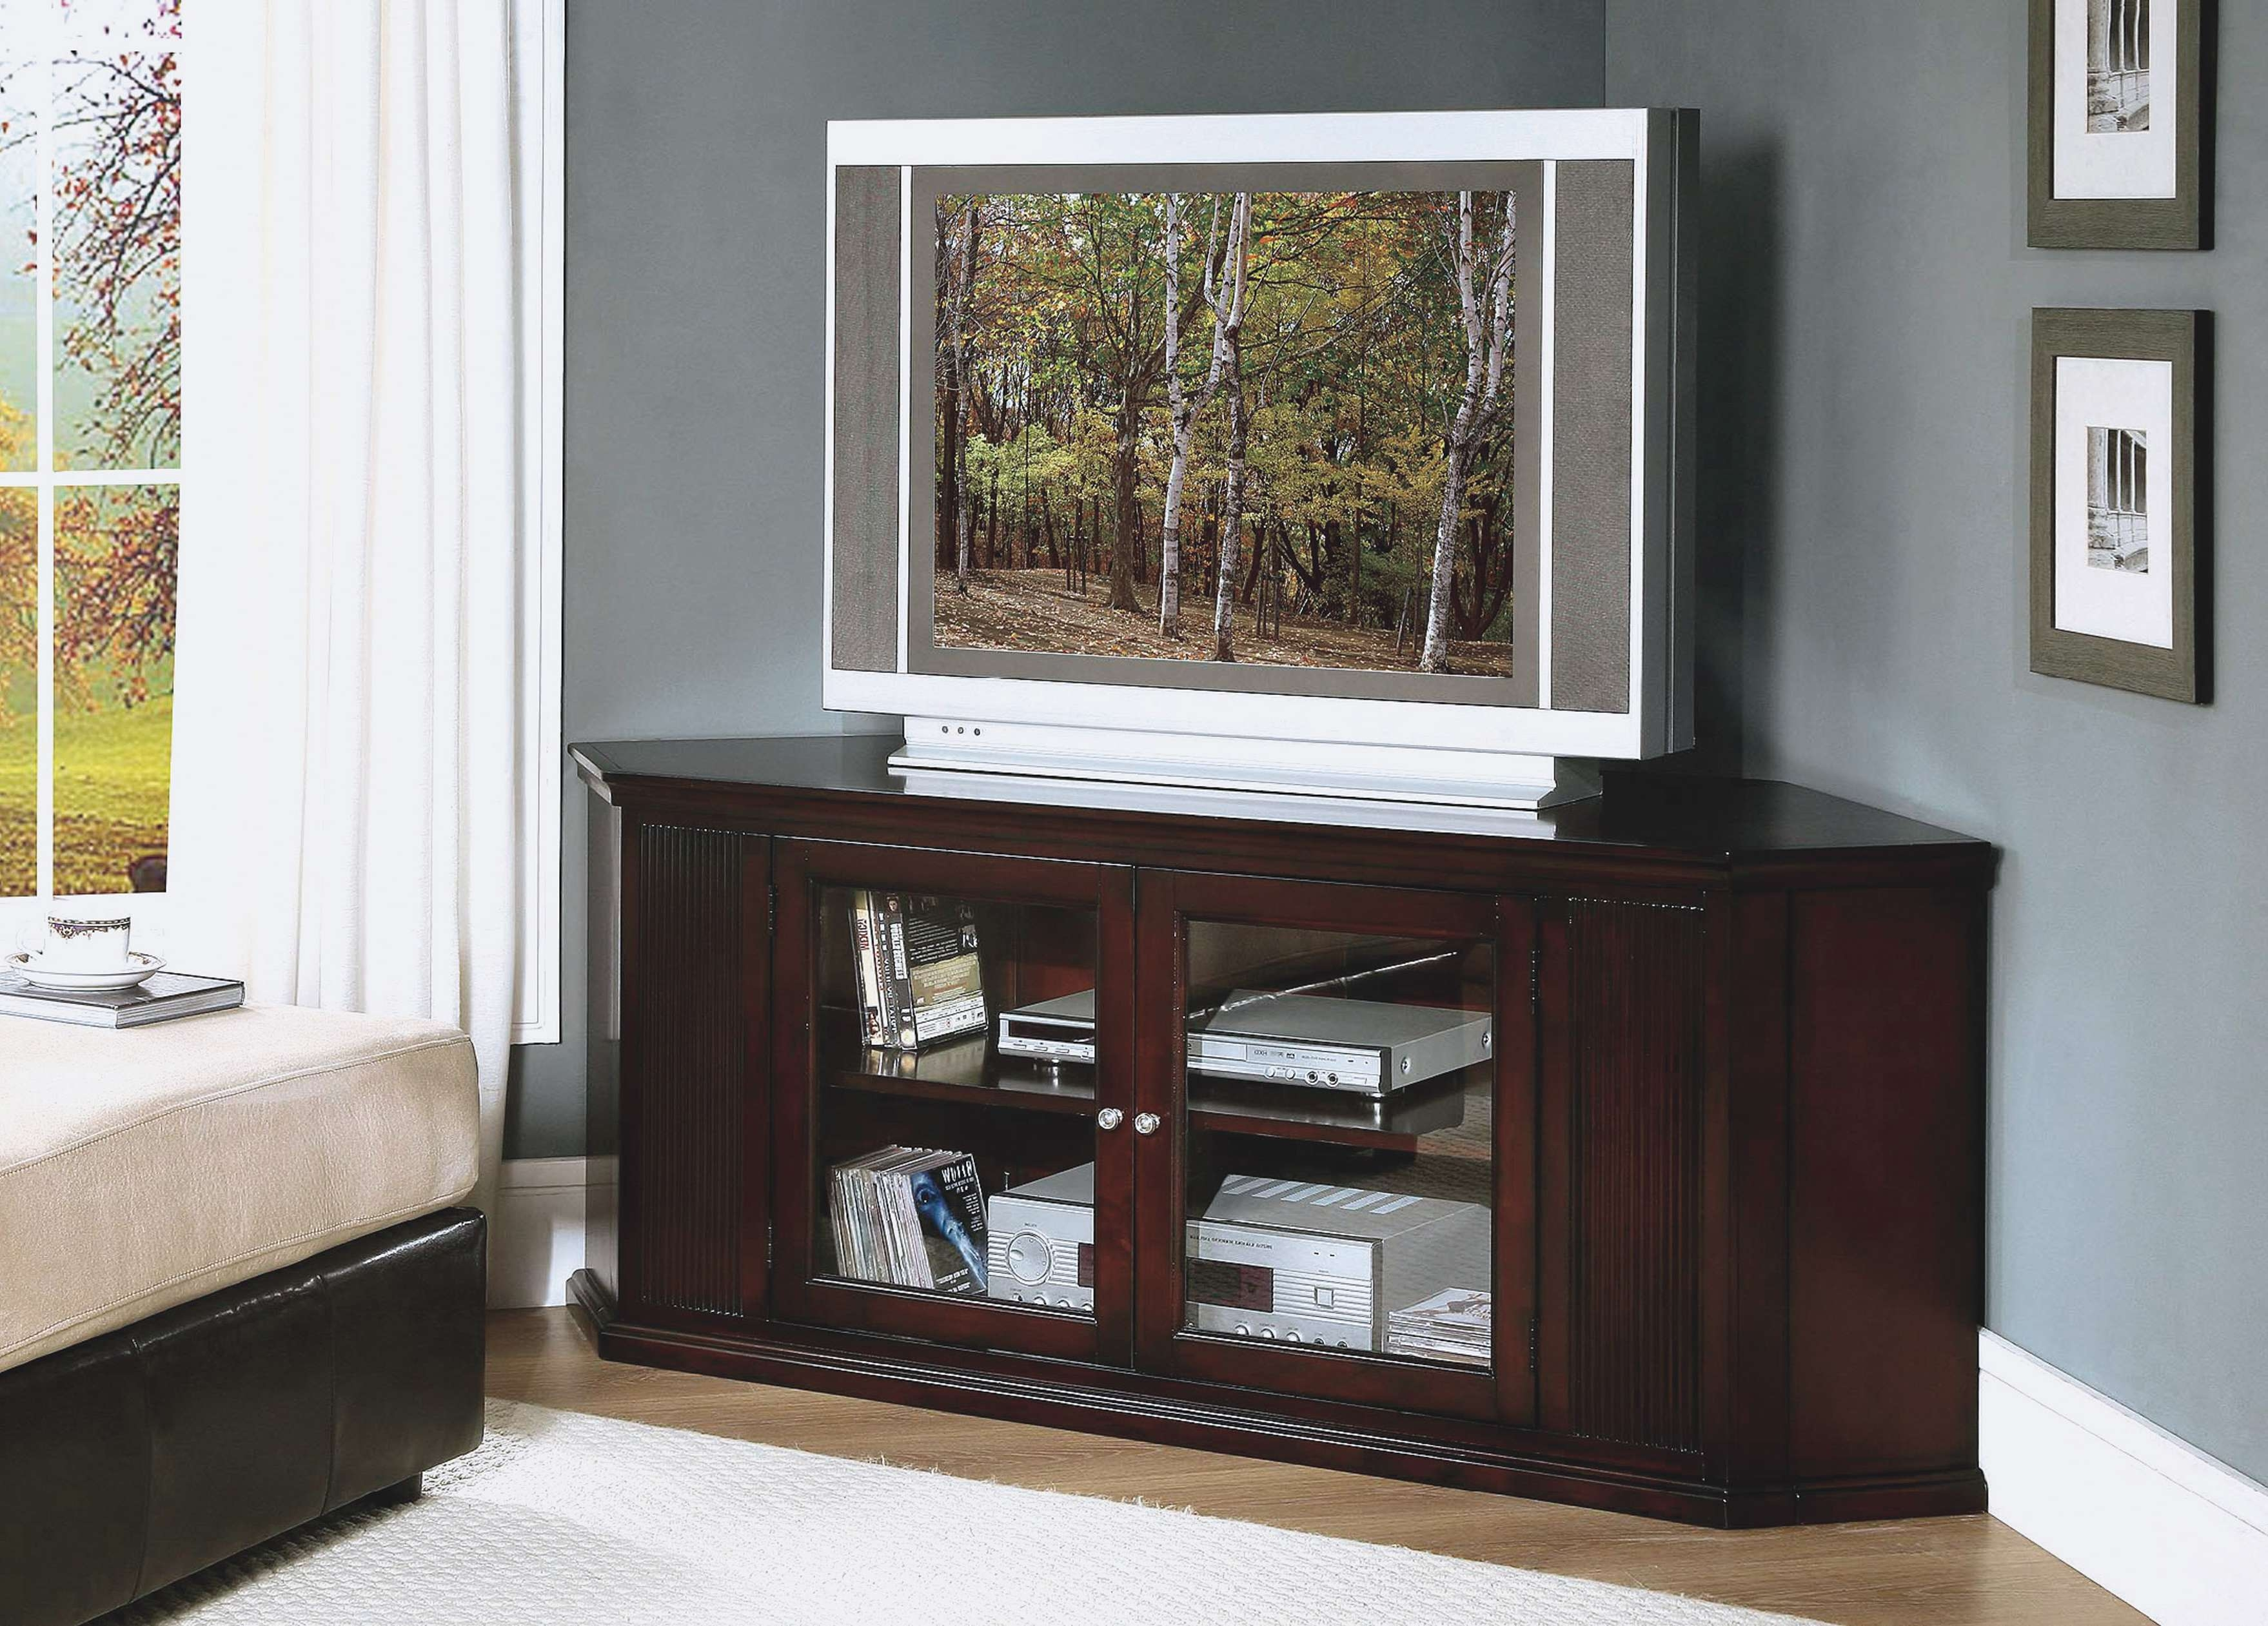 Appealing Chocolate Solid Wood Corner Tv Stand Microfiber Ottoman Inside Solid Wood Corner Tv Stands (View 4 of 20)